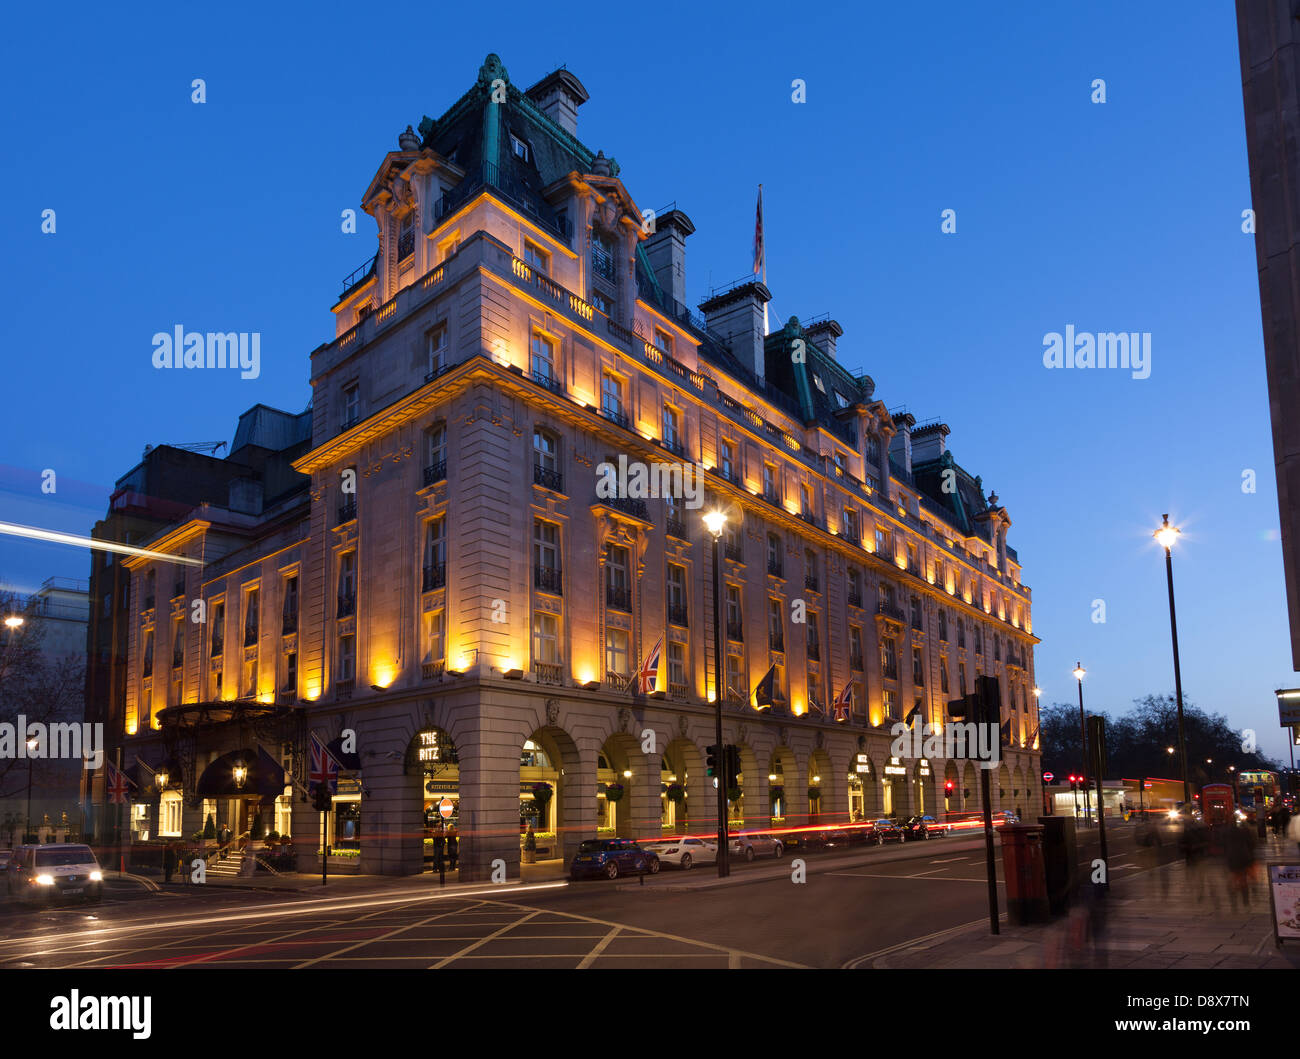 The Ritz at night,Piccadilly,London,England - Stock Image